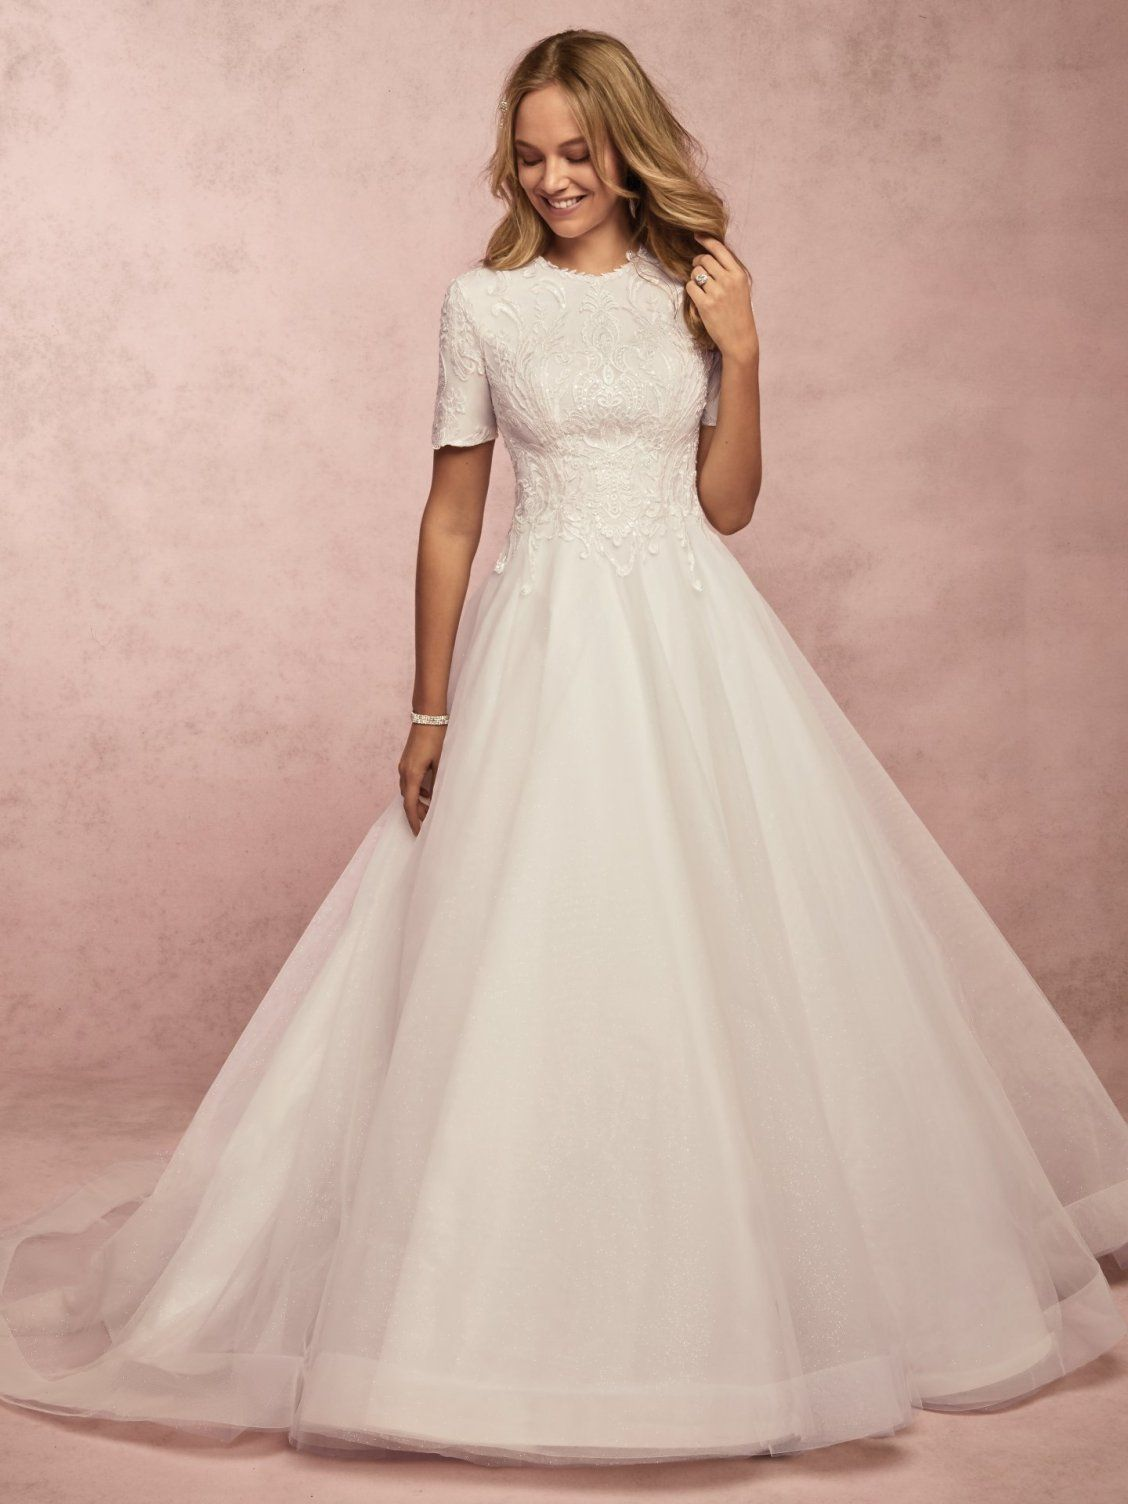 Ardelle Leigh By Rebecca Ingram Wedding Dresses Modest Bridal Gowns Wedding Dresses Lace Modest Wedding Gowns